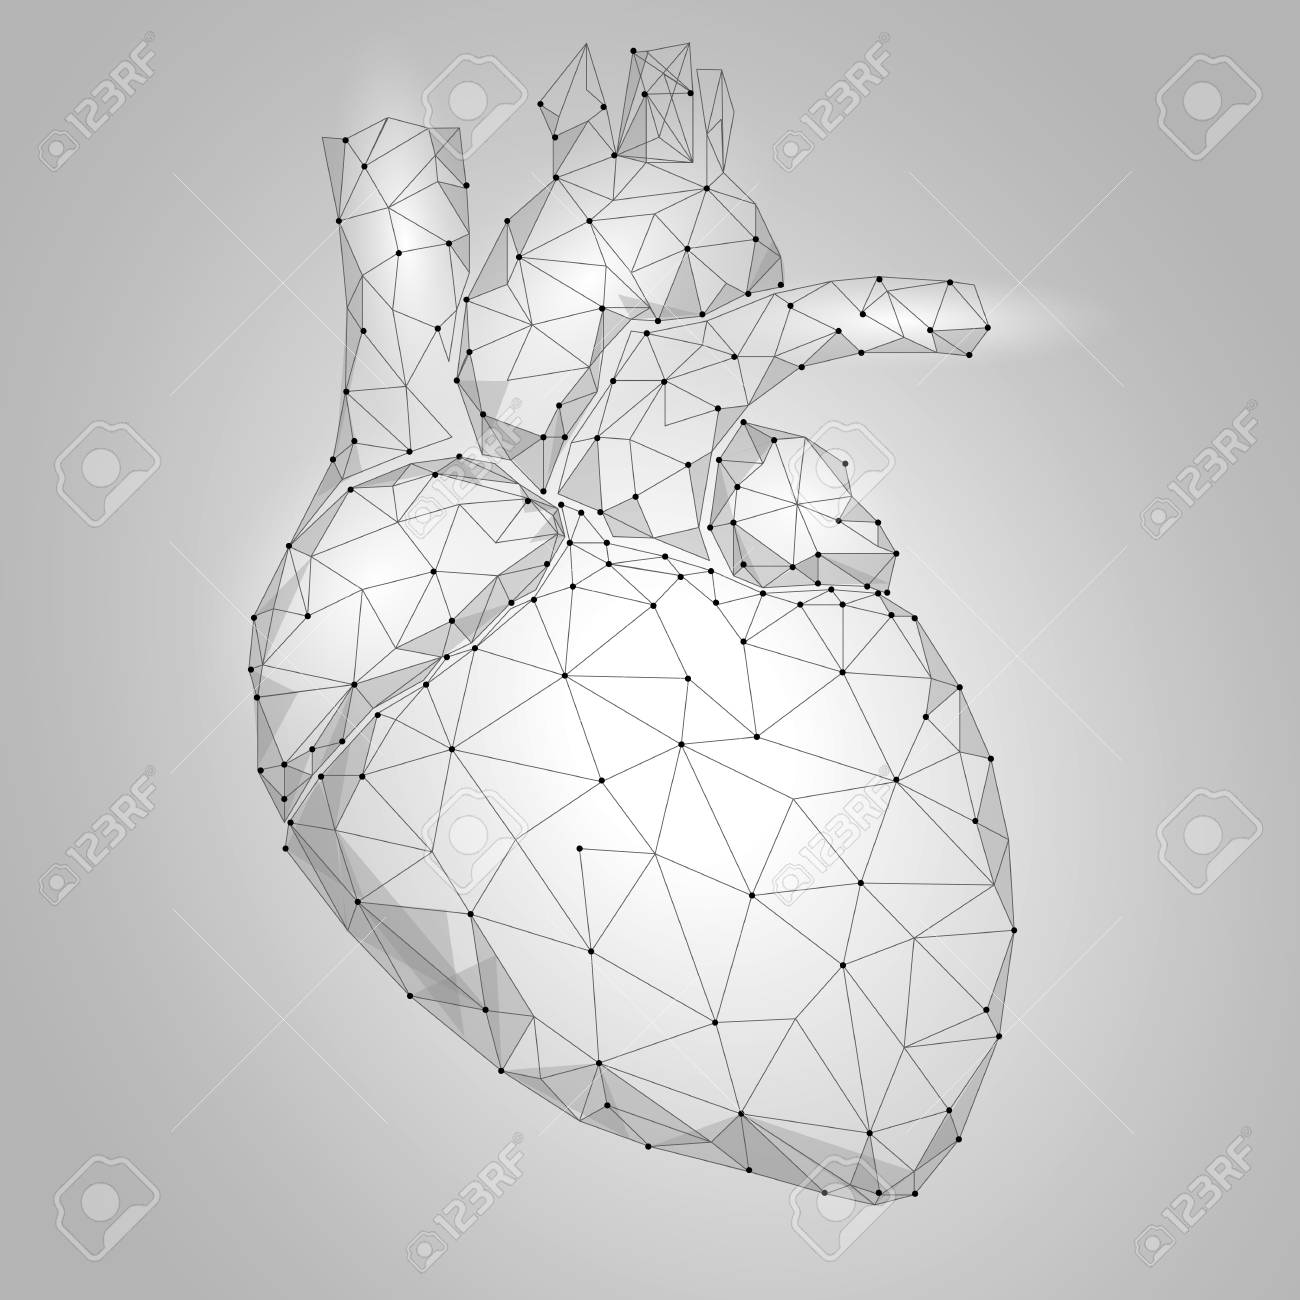 Human Heart Internal Organ Triangle Low Poly  Connected dots